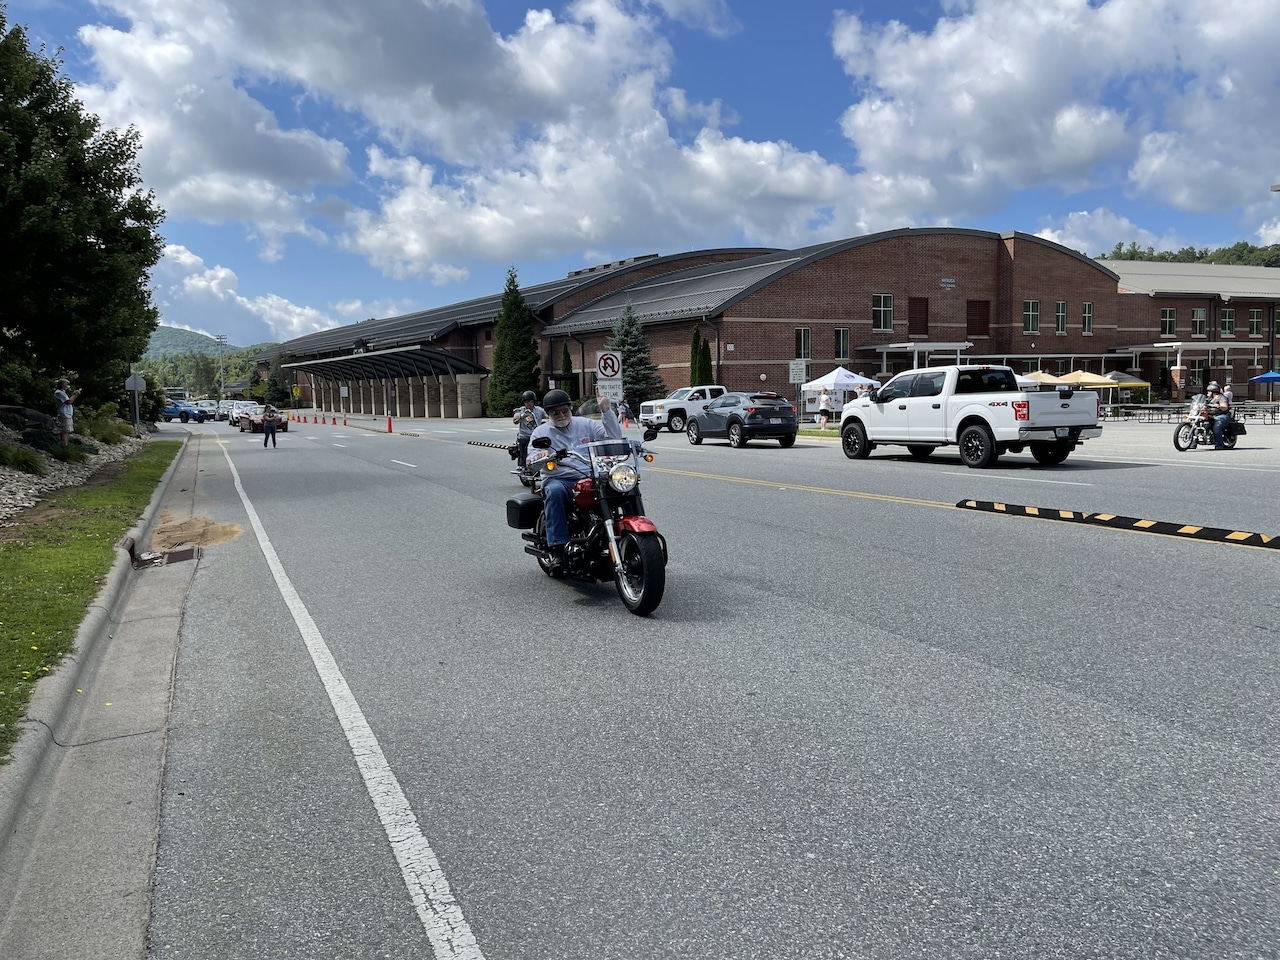 2021 William Mast Jr. Memorial Motorcycle Ride sights and sounds